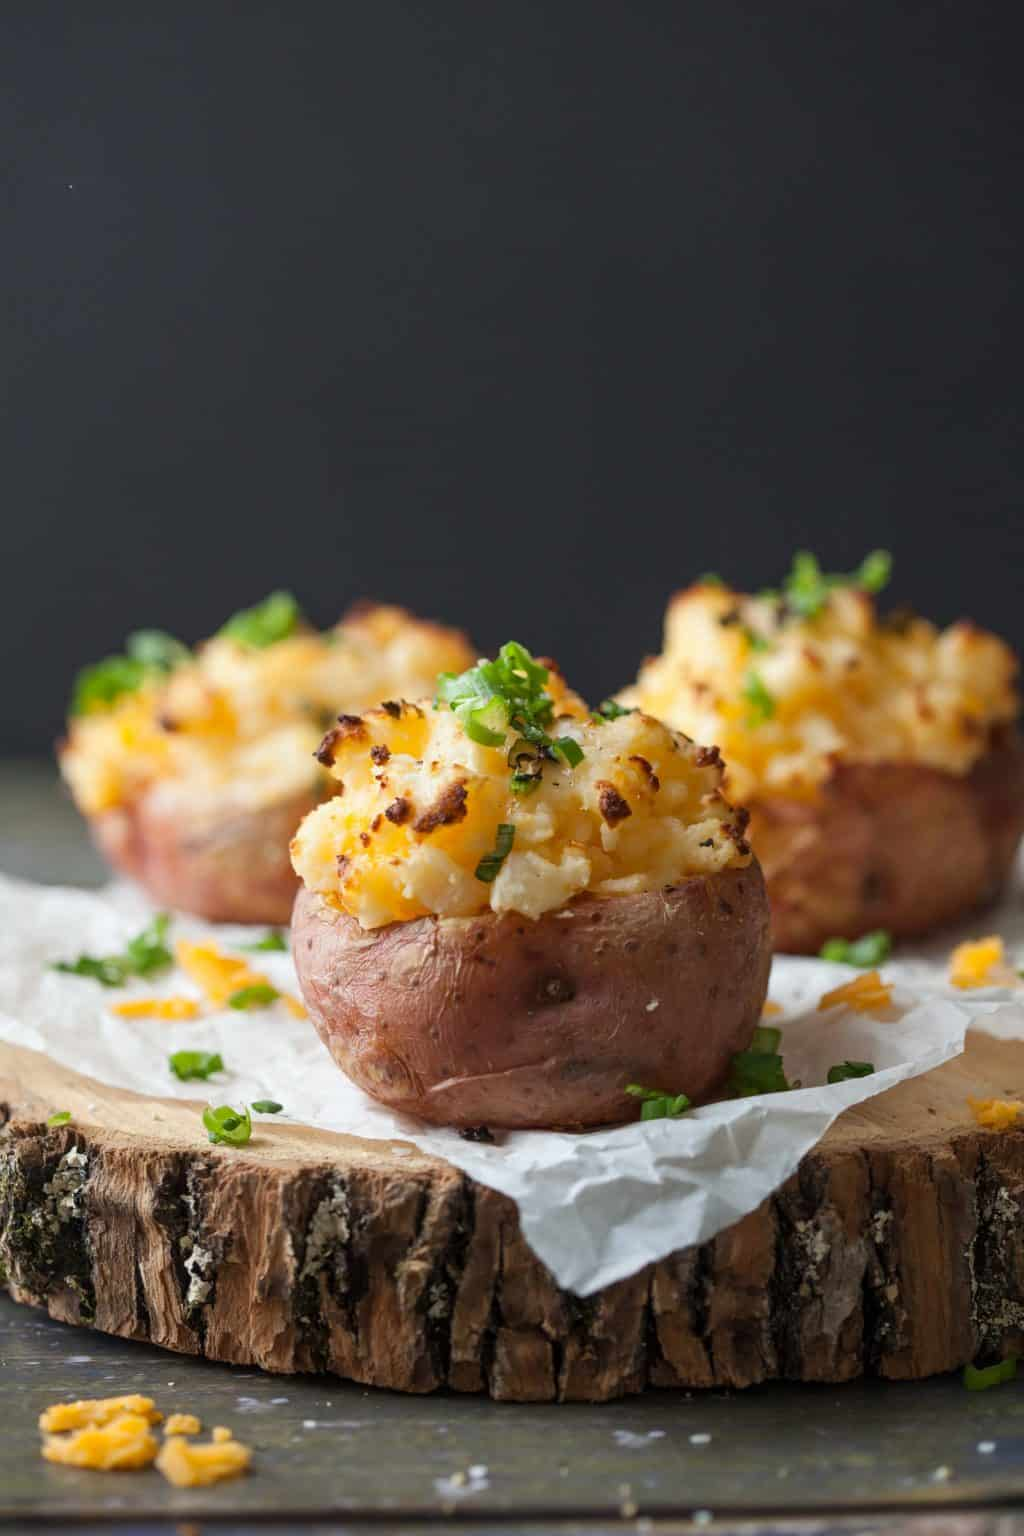 Piled high with cheesy filling, loaded overstuffed baked potatoes take a microwave shortcut and are ready in just 30 minutes.